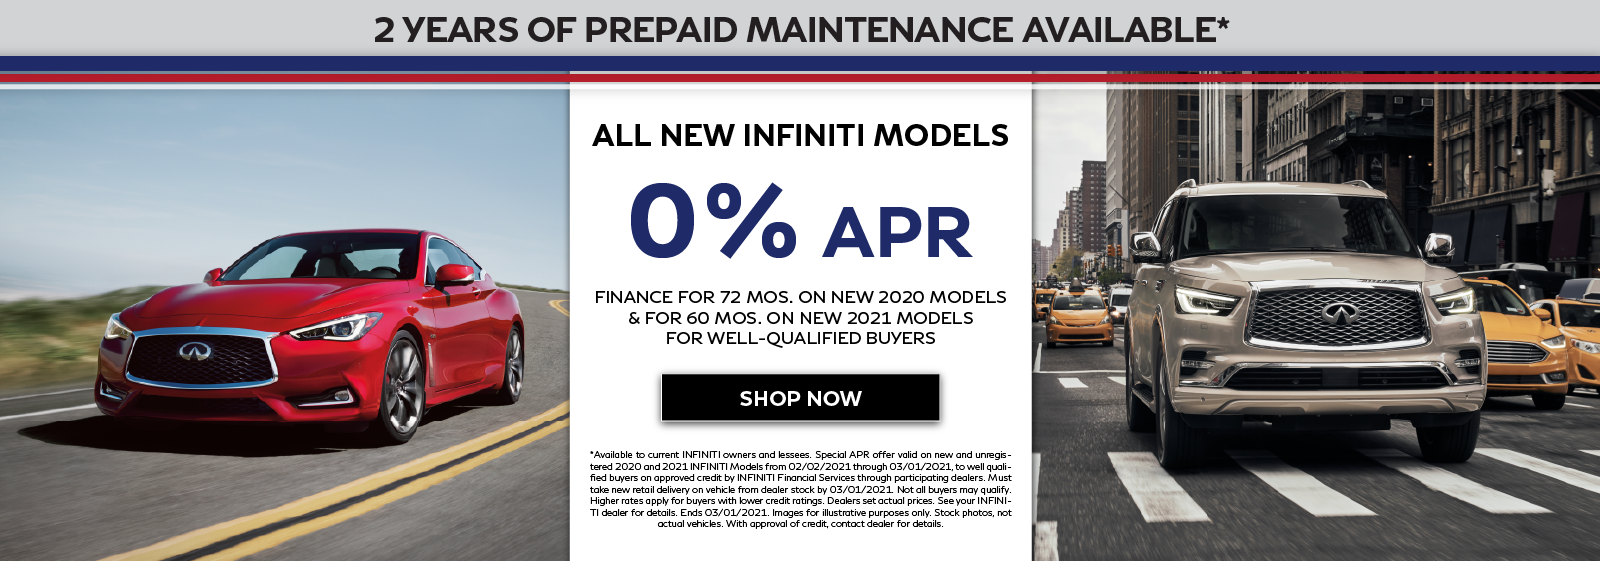 0% APR for 60 or 72 months on New INFINITI. Click to shop now.